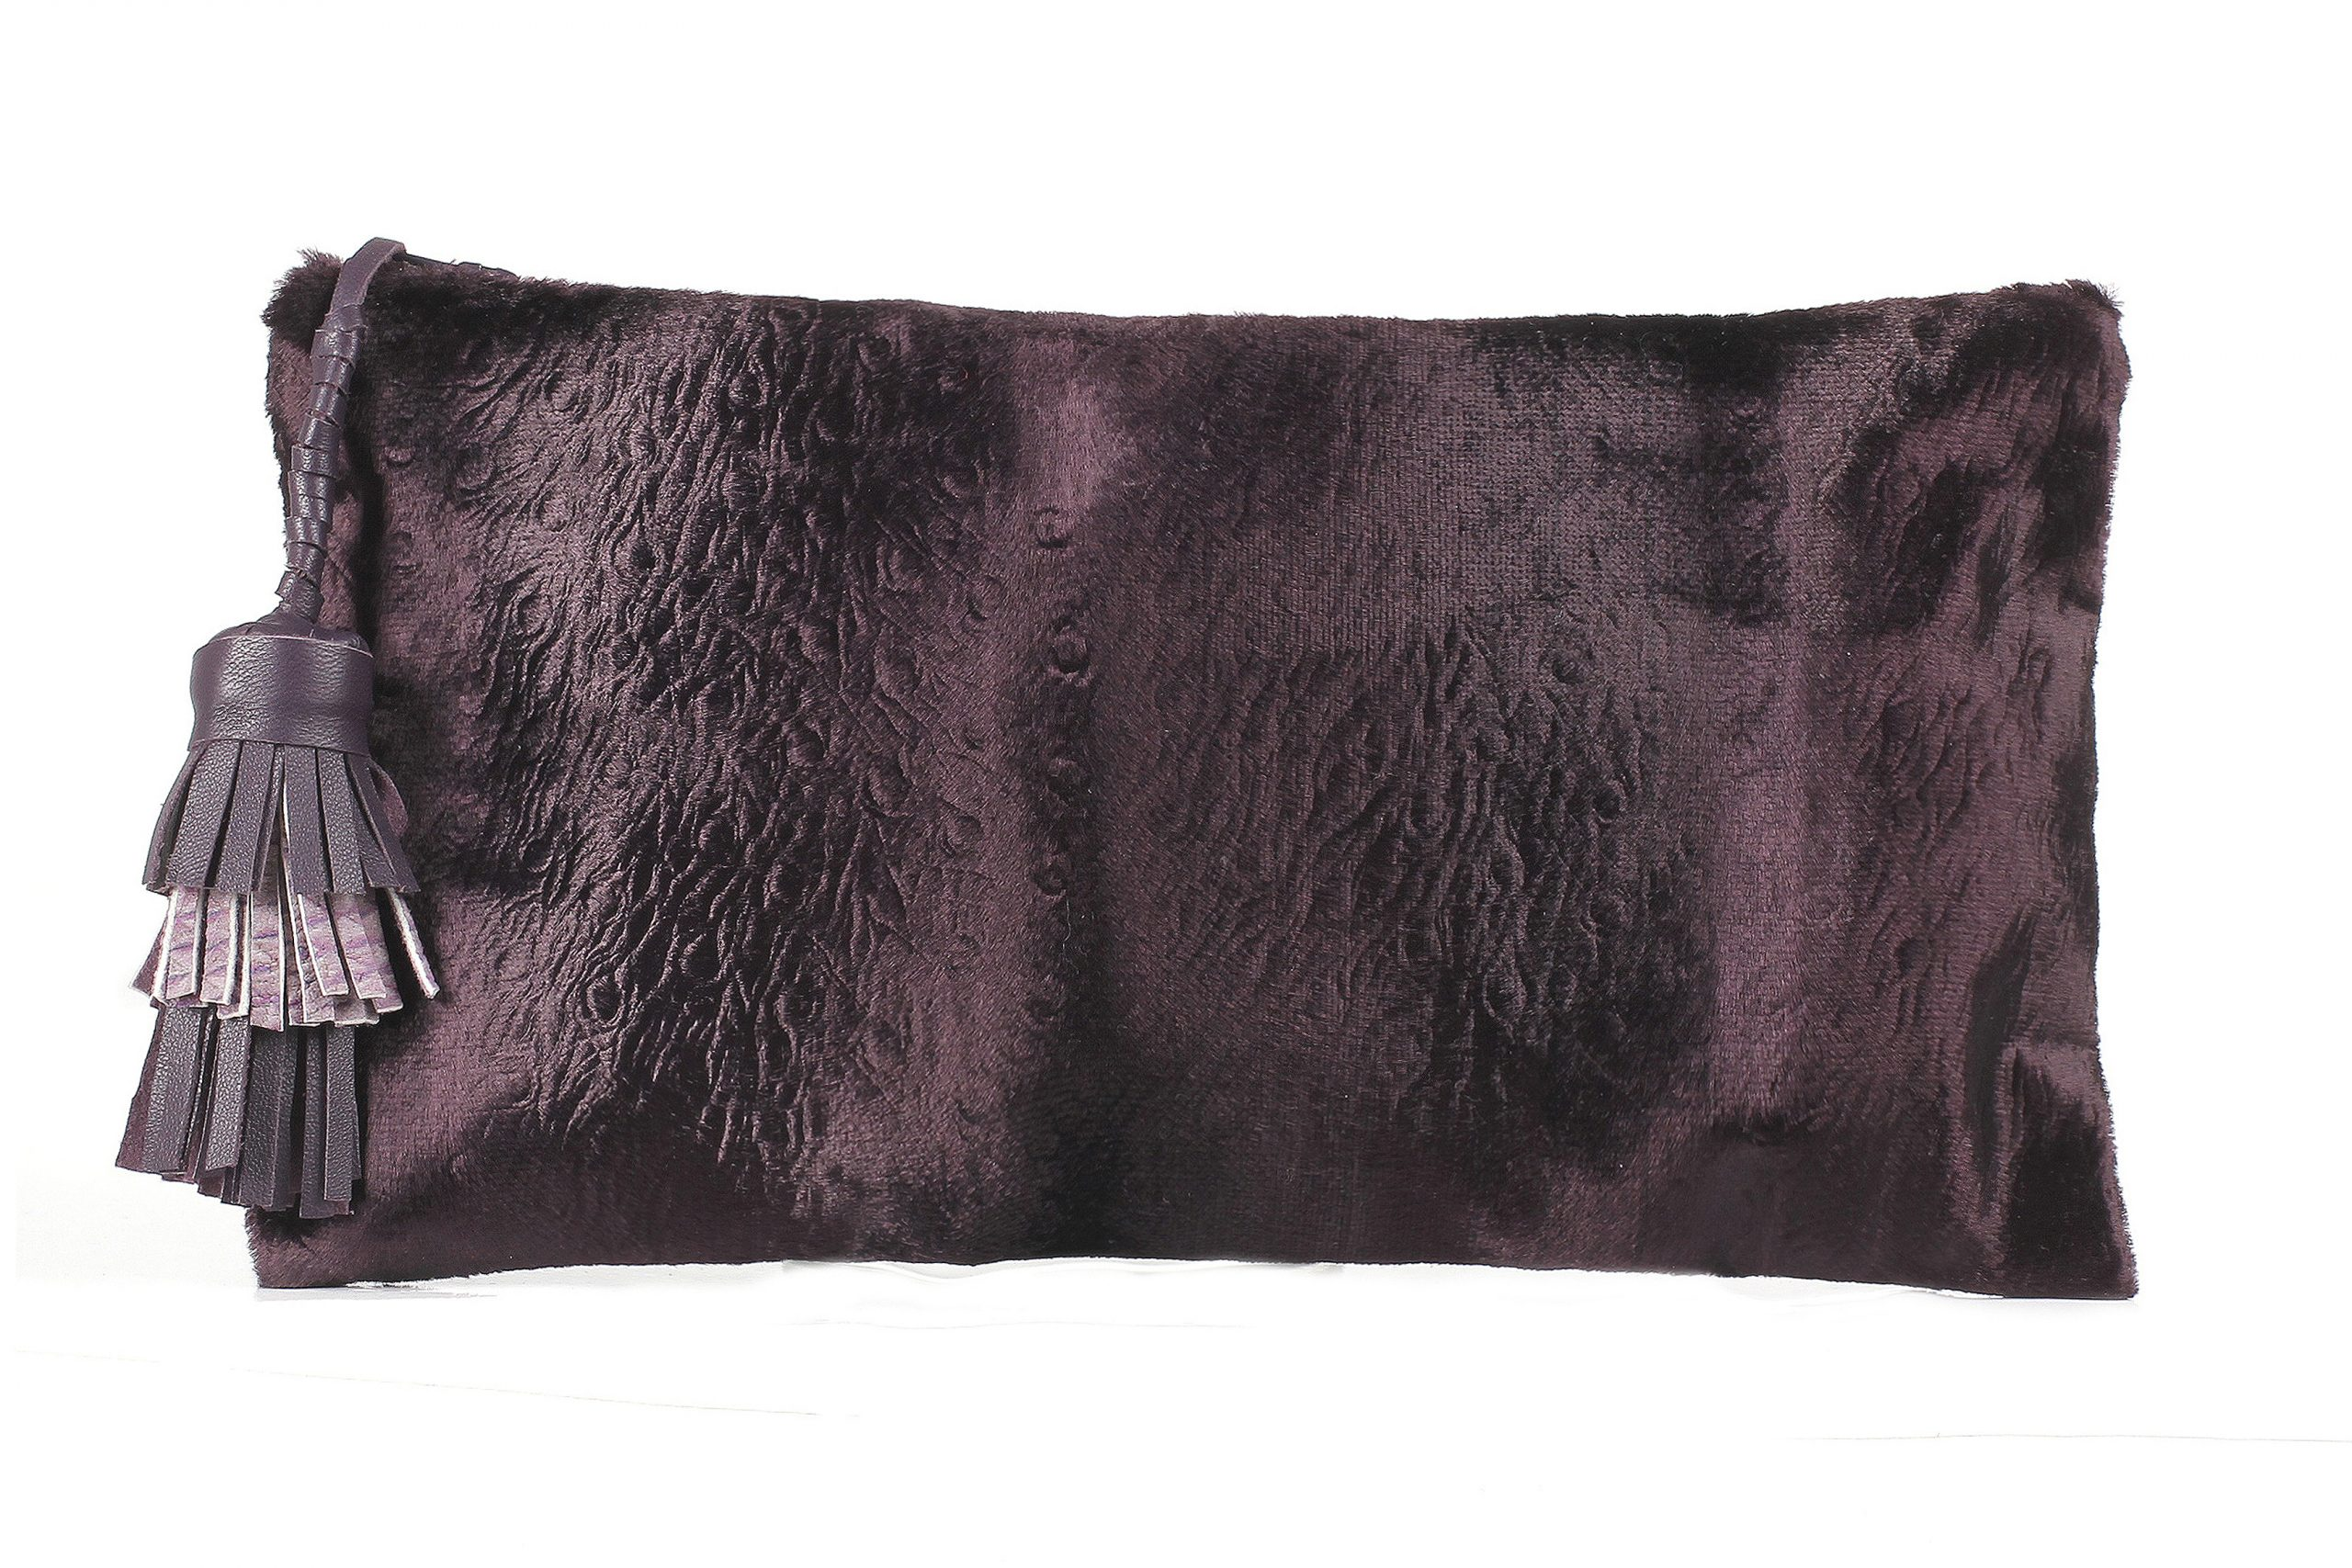 Faux fur Luxury high quality Italian fabric.